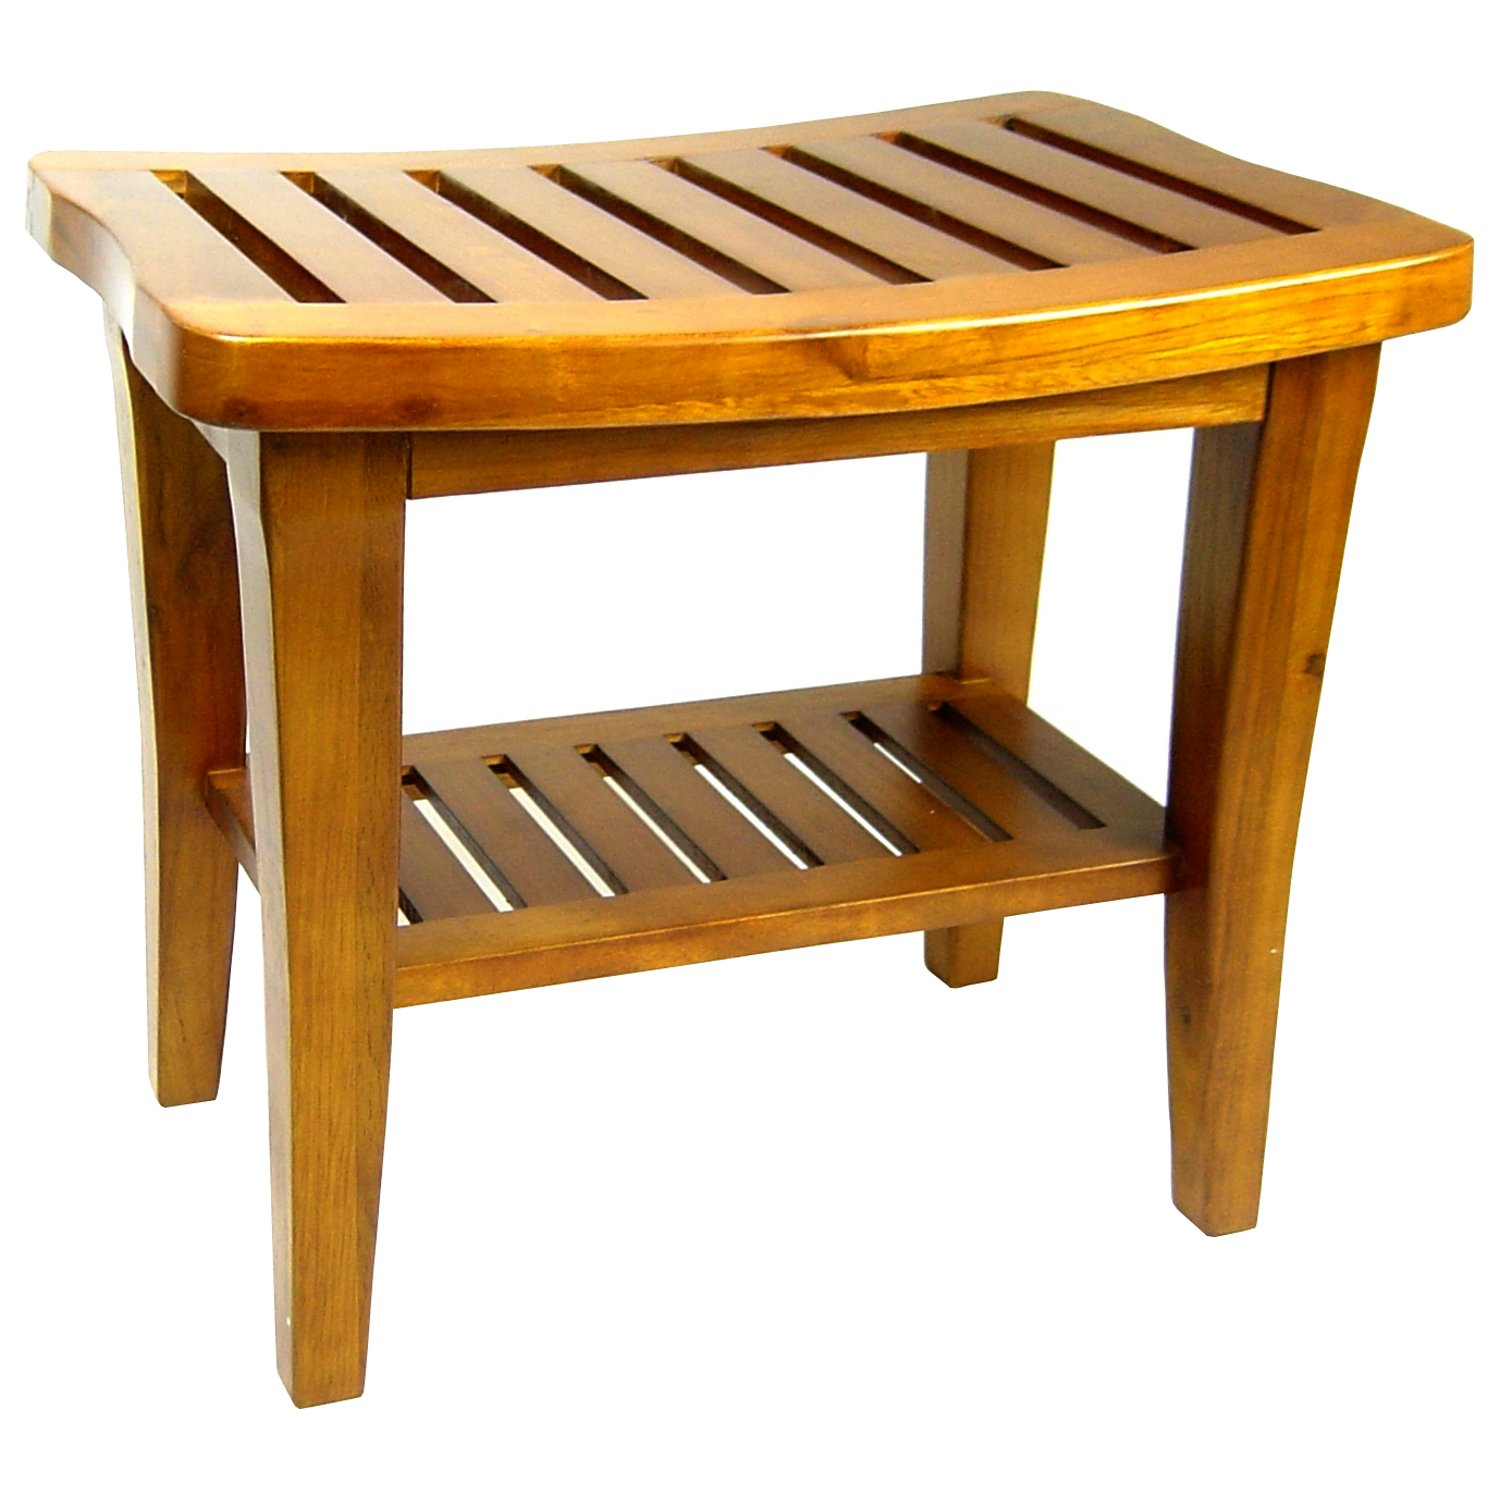 Premium Wood Shower Seat Bench Solid Teak Bathroom Stool Toilet ...